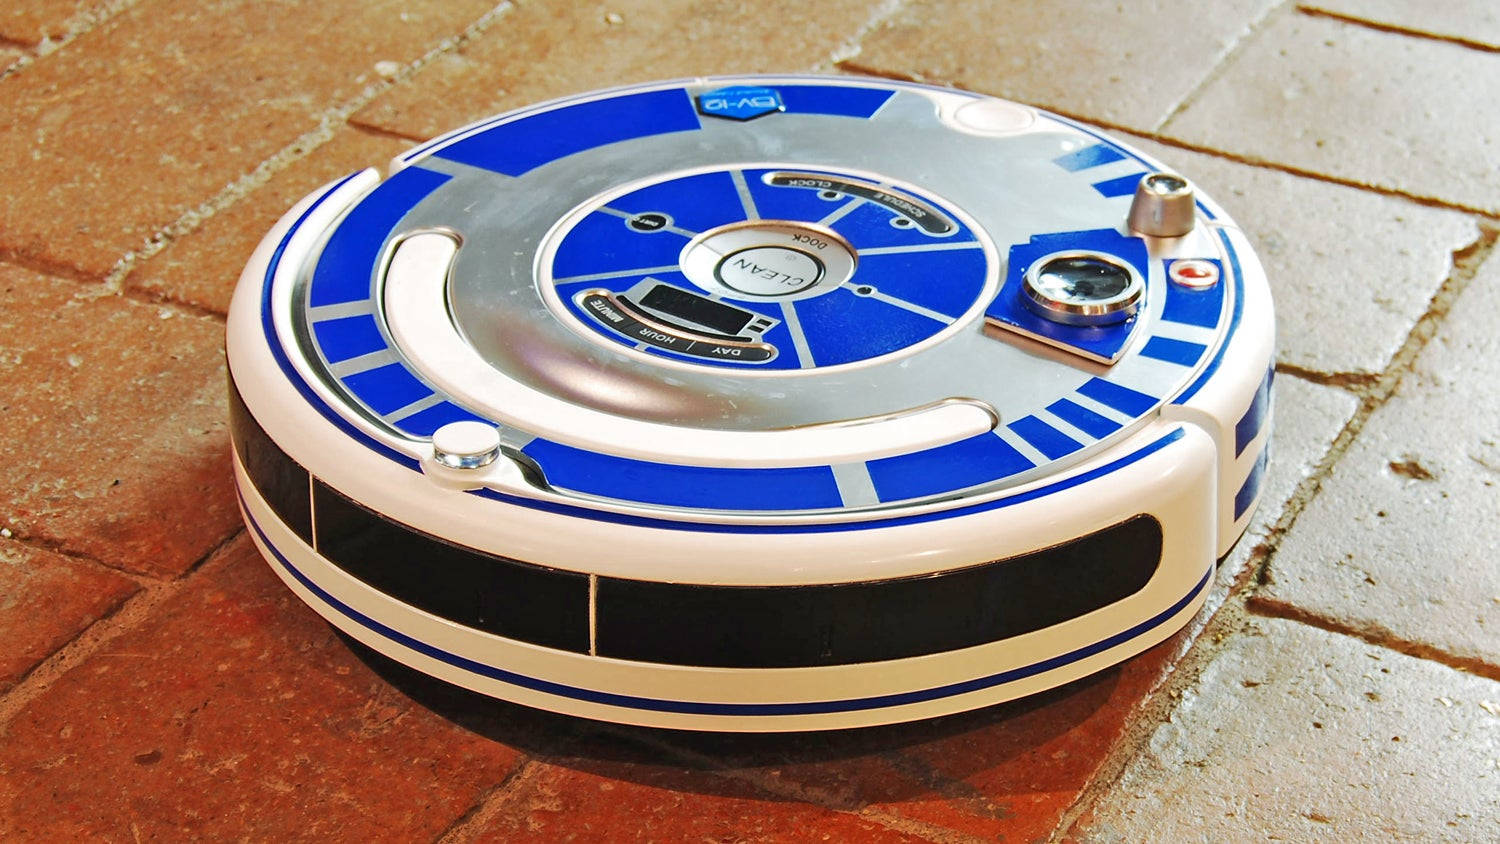 Turn Your Roomba Into the Star Wars Droid You Already Pretend It Is